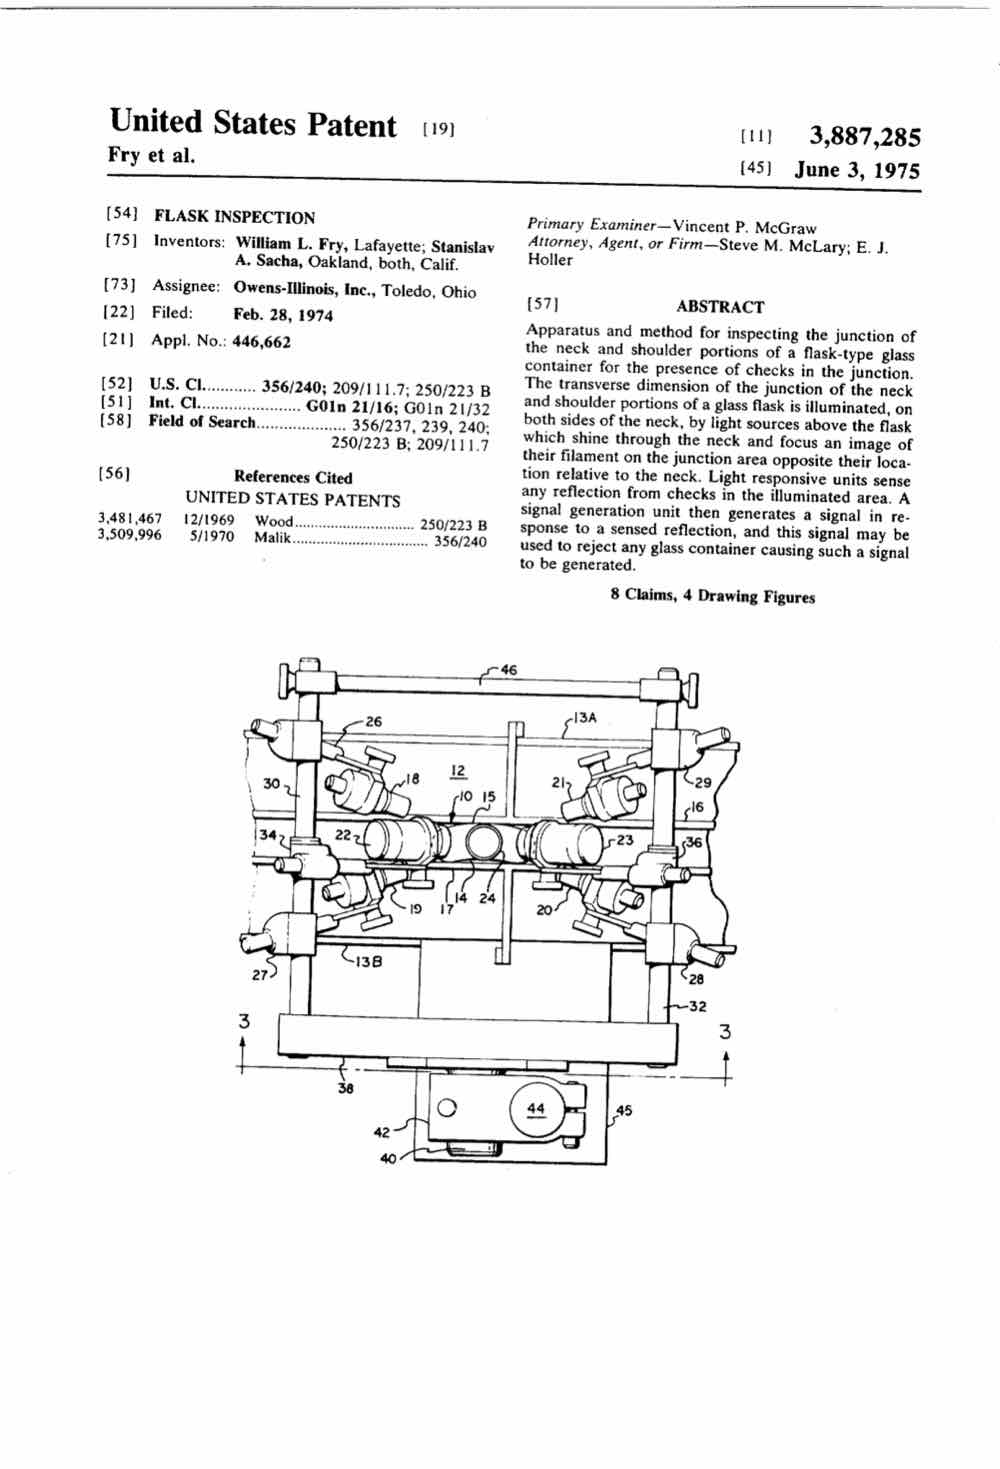 Manufacturing Peacock Law Pc Part 2 P 51 Engine Diagram Flask Inspection 3887285